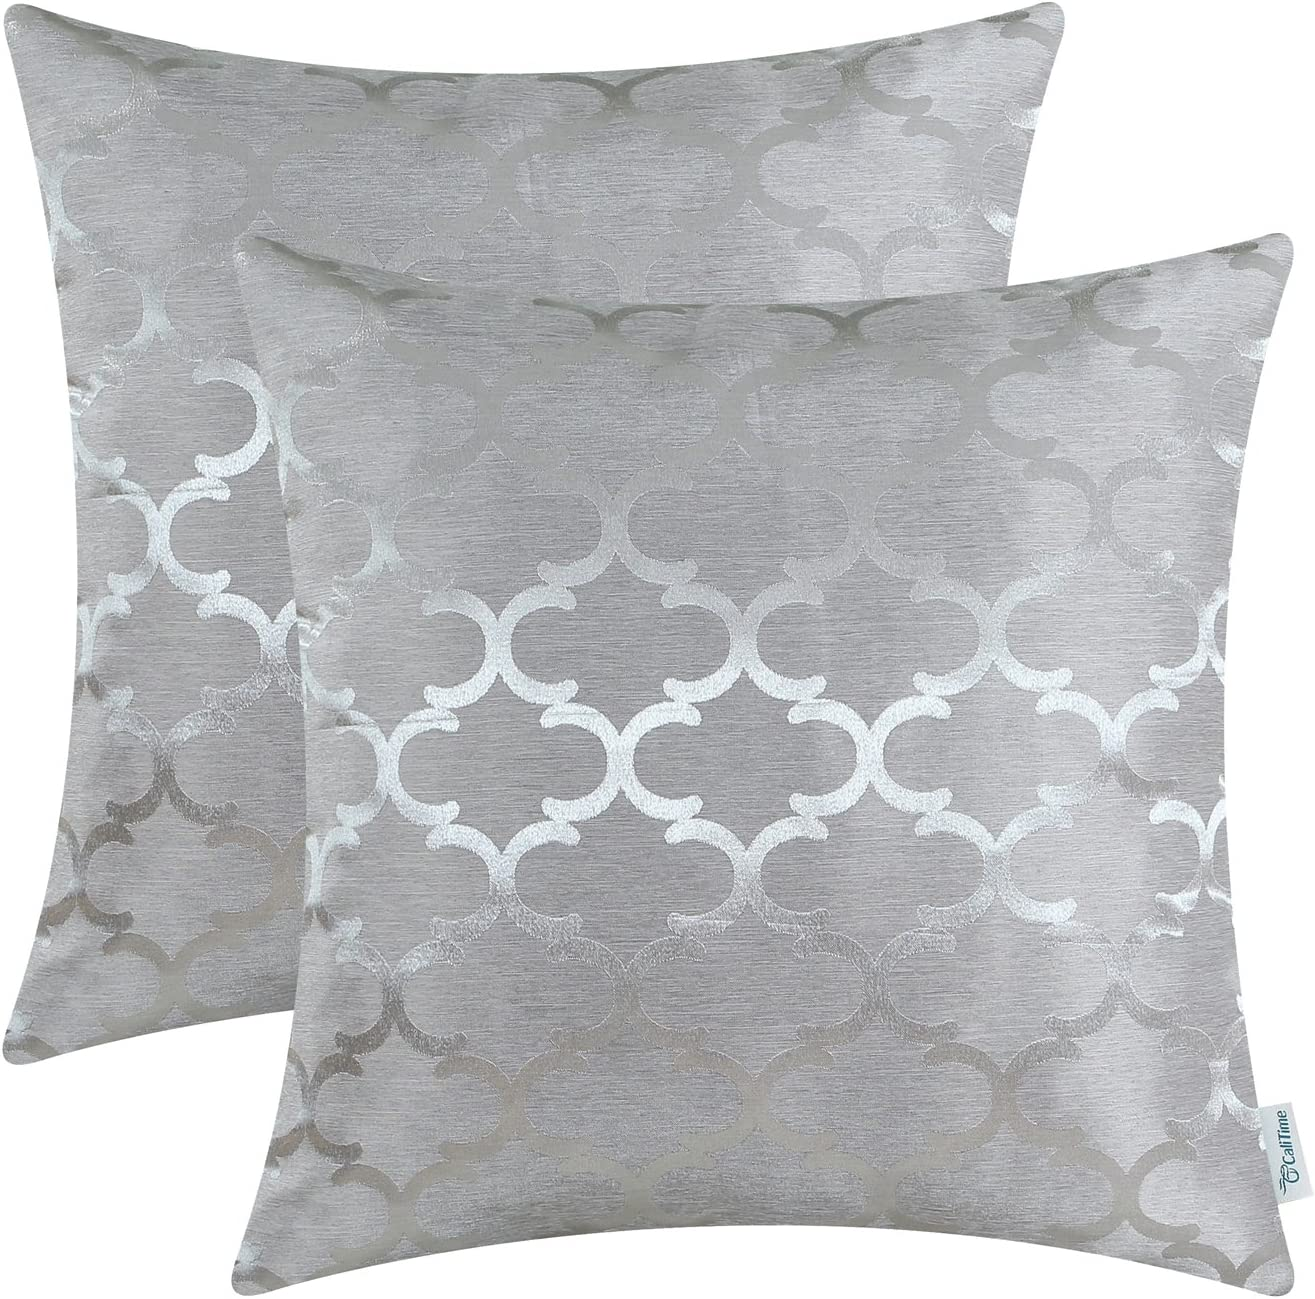 CaliTime Pack of 2 Cushion Covers Throw Pillow Cases Shells for Home Sofa Couch Modern Shining & Dull Contrast Quatrefoil Accent Geometric 20 X 20 Inches Silver Gray